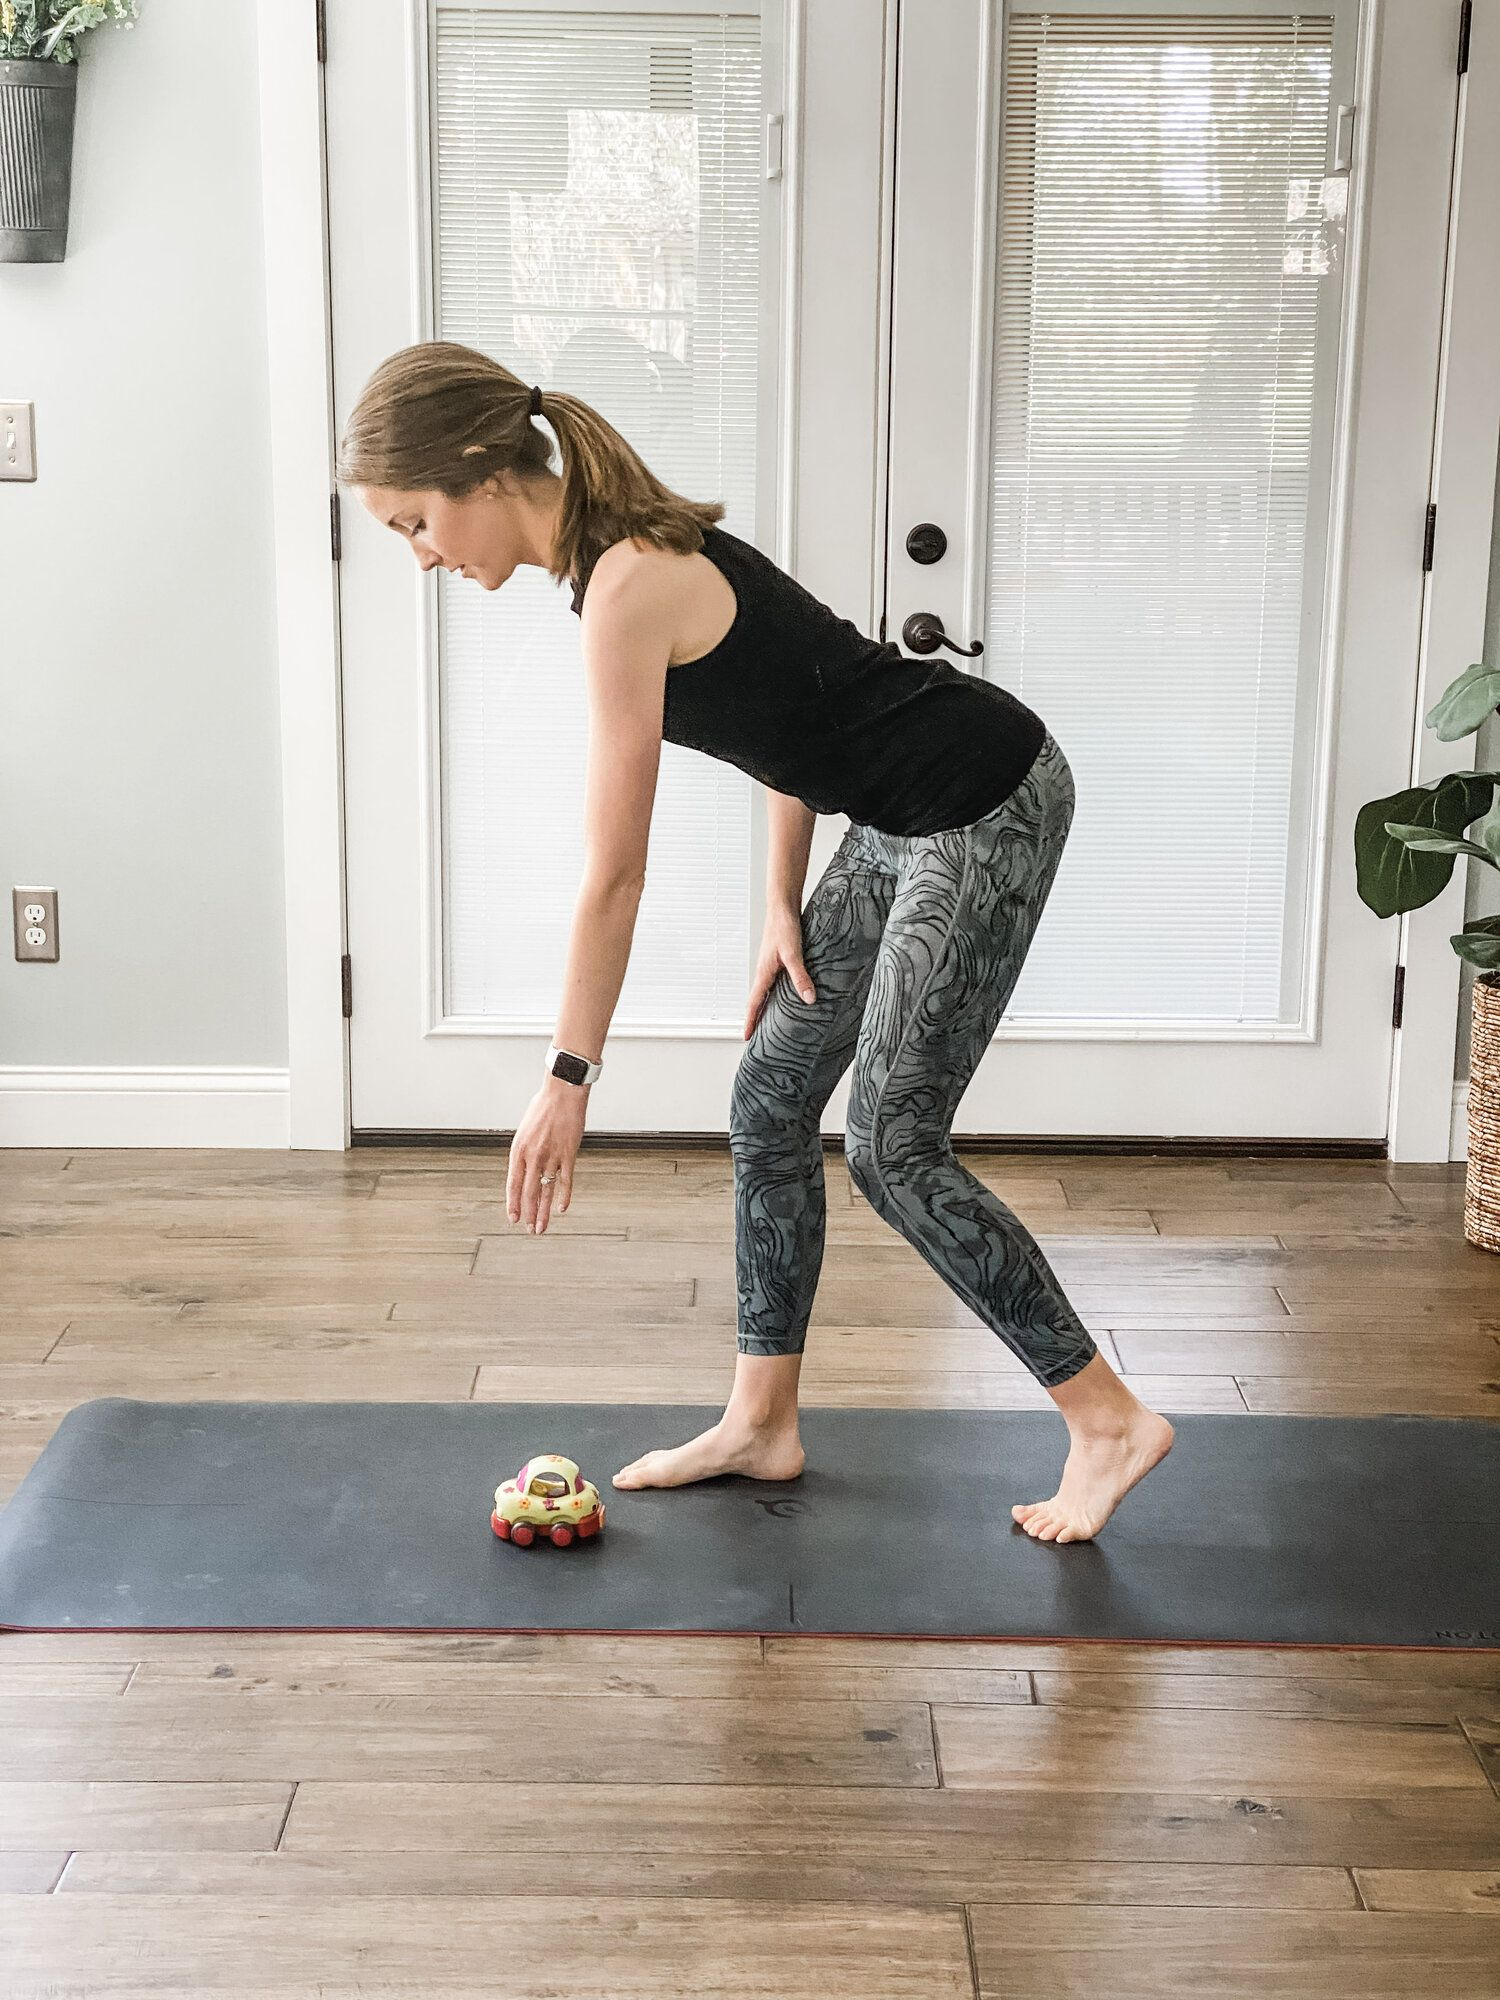 15+ Tip 2 Body Mechanics Your How To Guide for Movement — Thriving Mommas